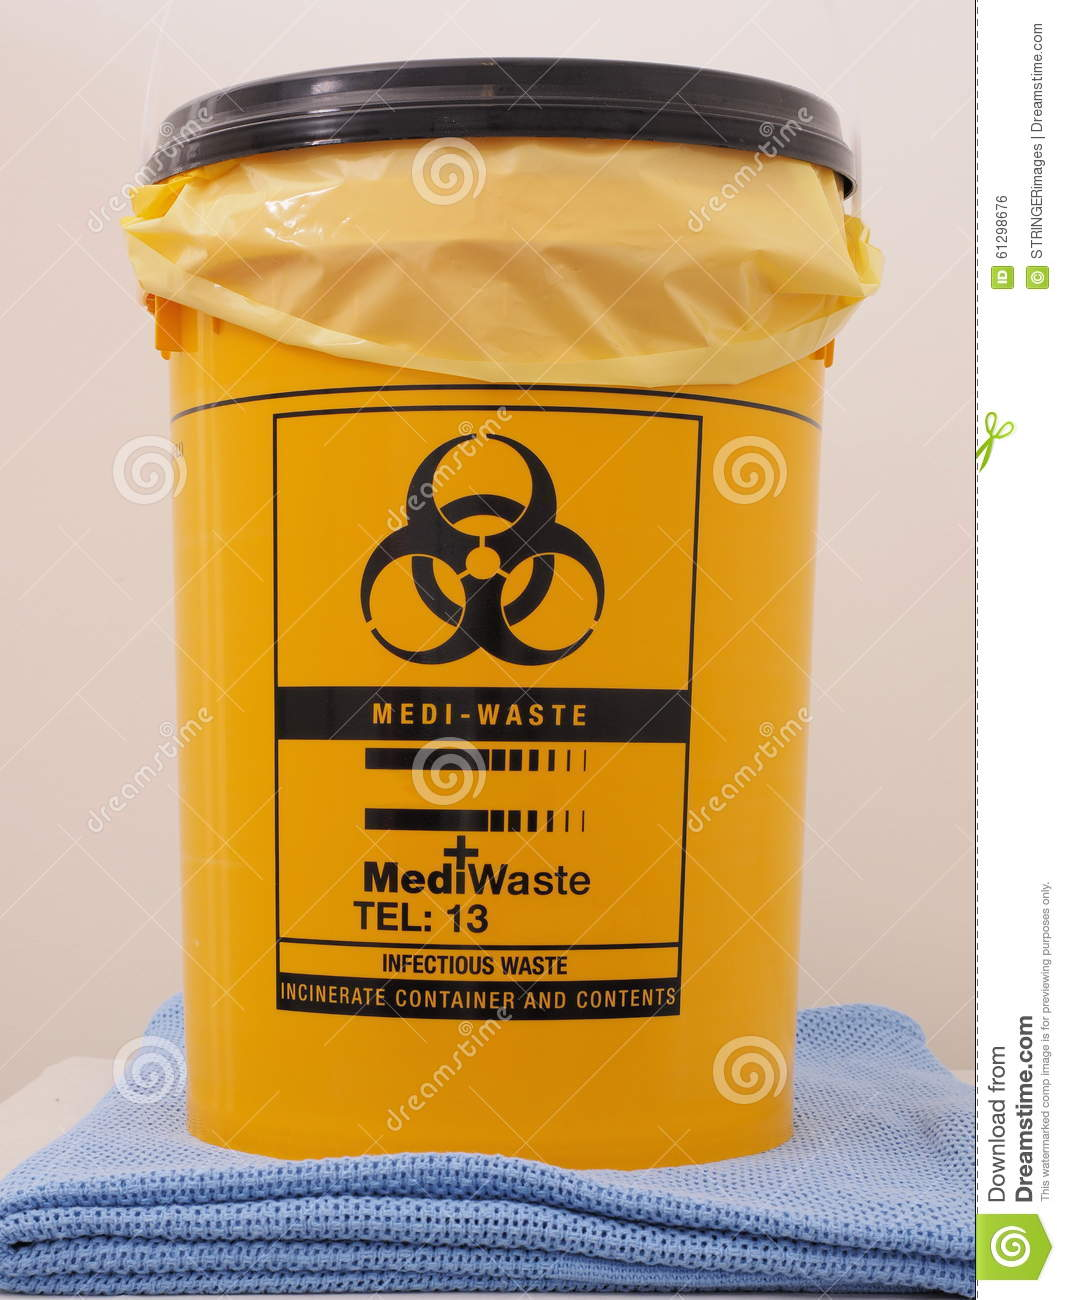 Bio Hazard labled yellow specialist collection container